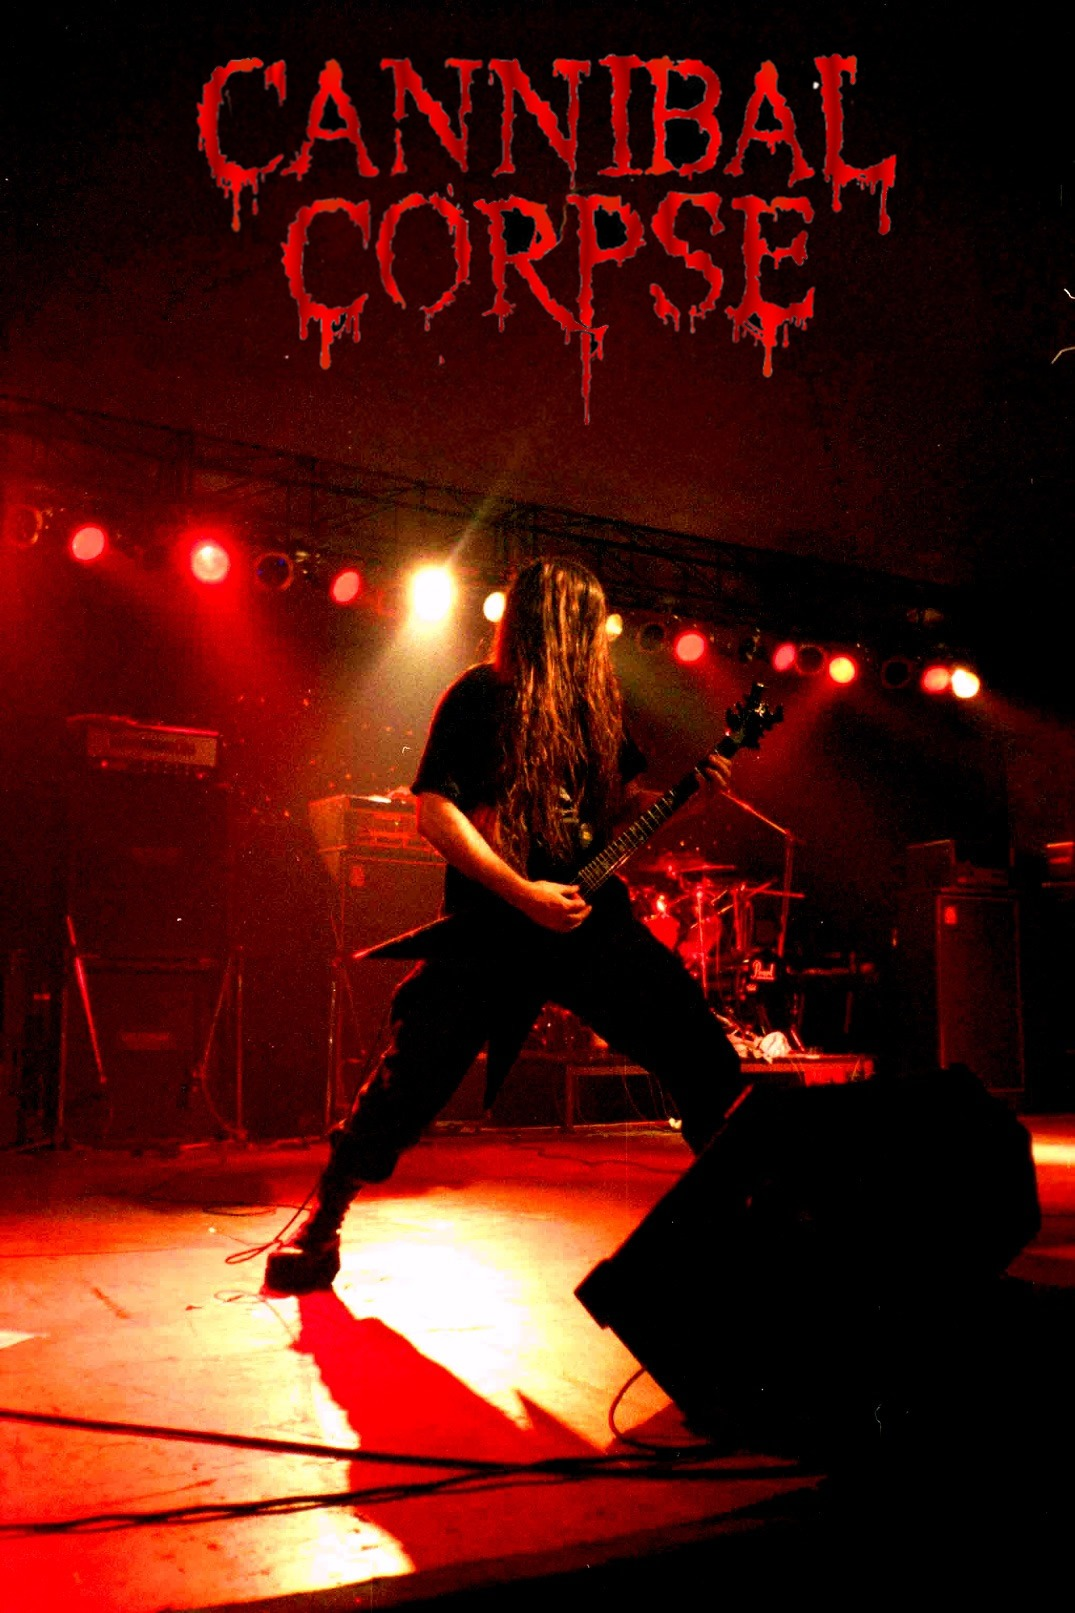 Cannibal Corpse By Midhgardhsorm On Deviantart